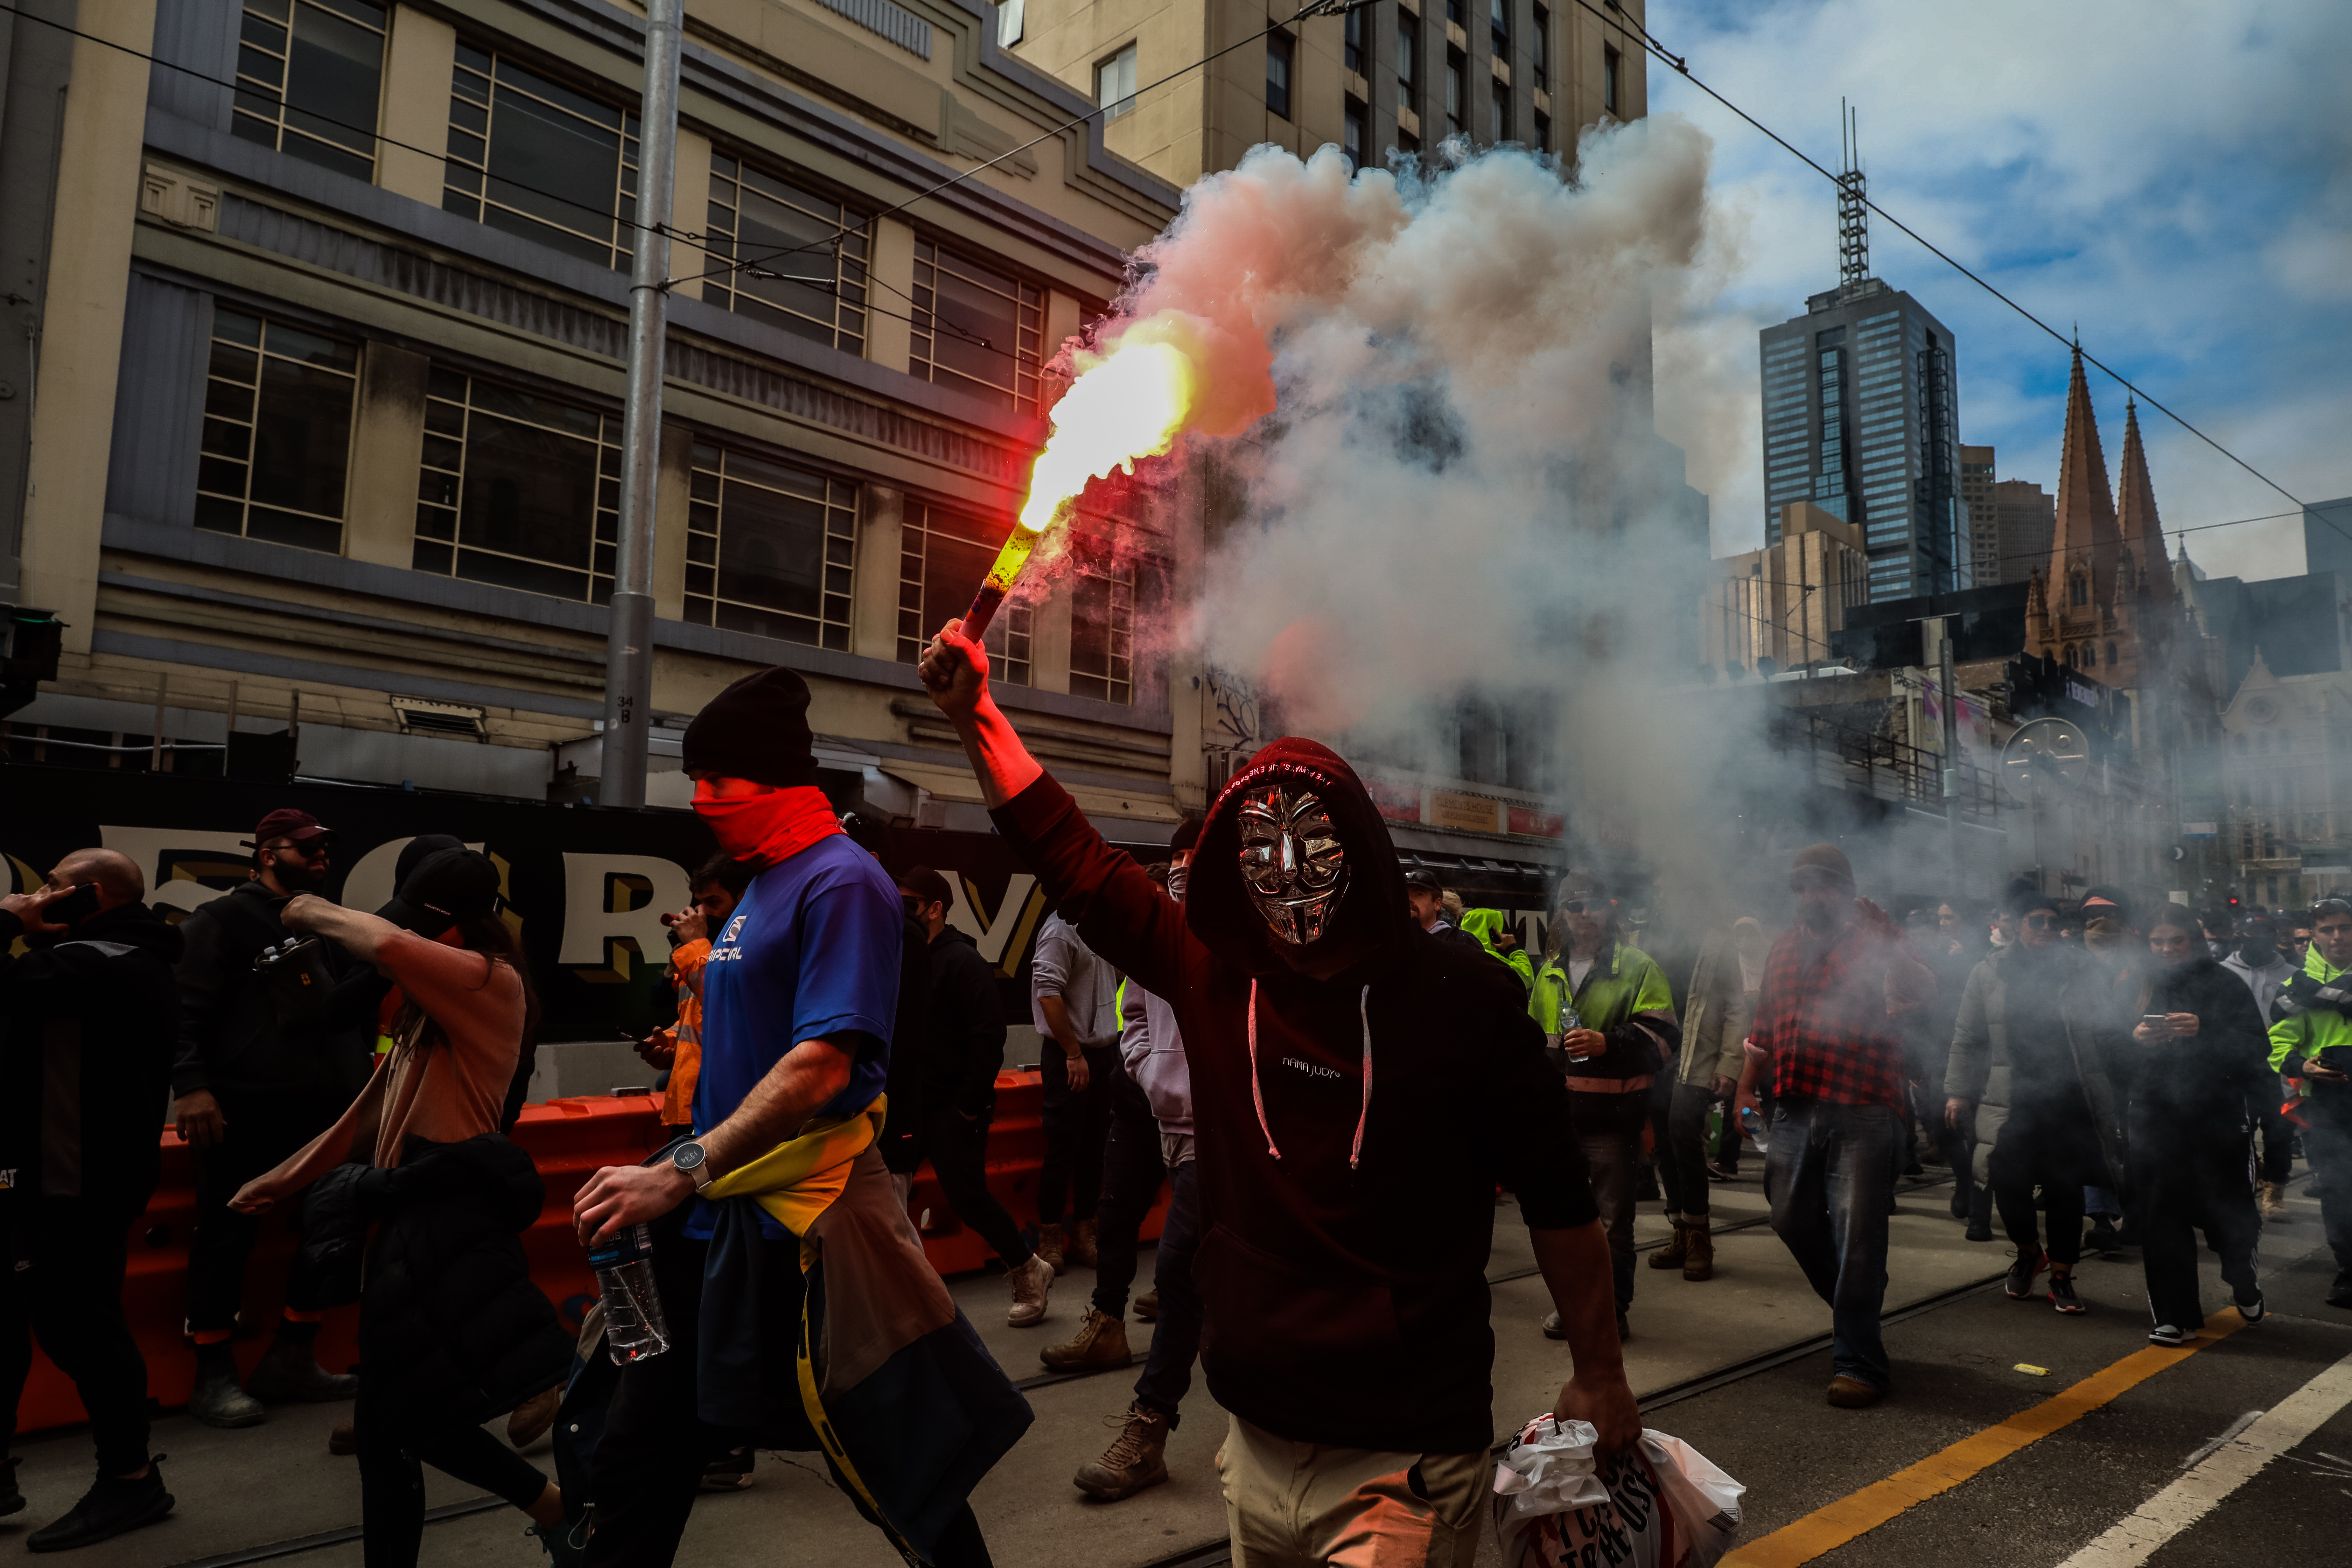 'Anger' won't end the pandemic, Premier says, as Melbourne braces for third day of protests